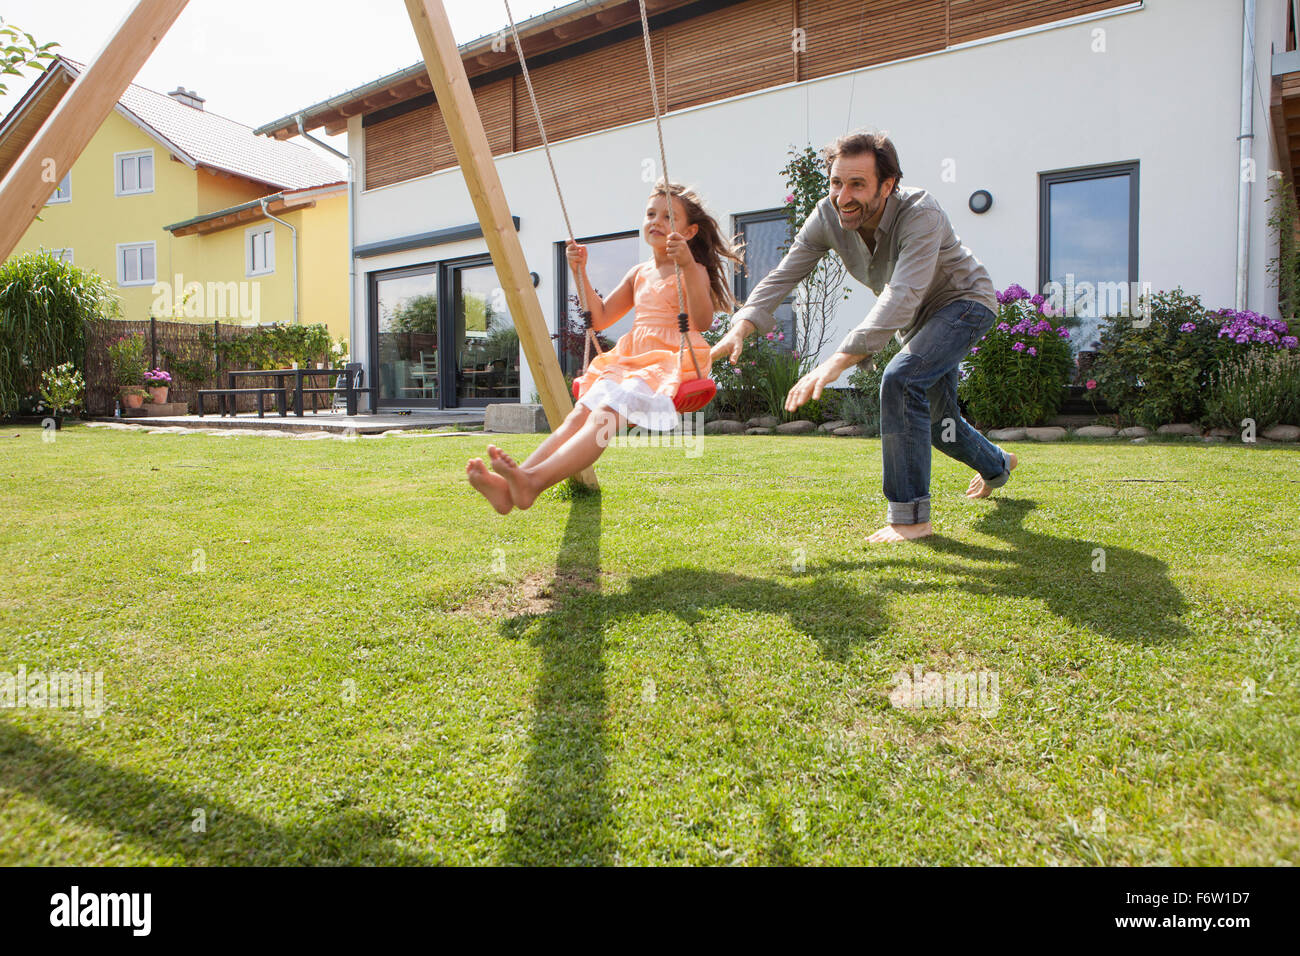 Father pushing daughter on a swing in garden Stock Photo